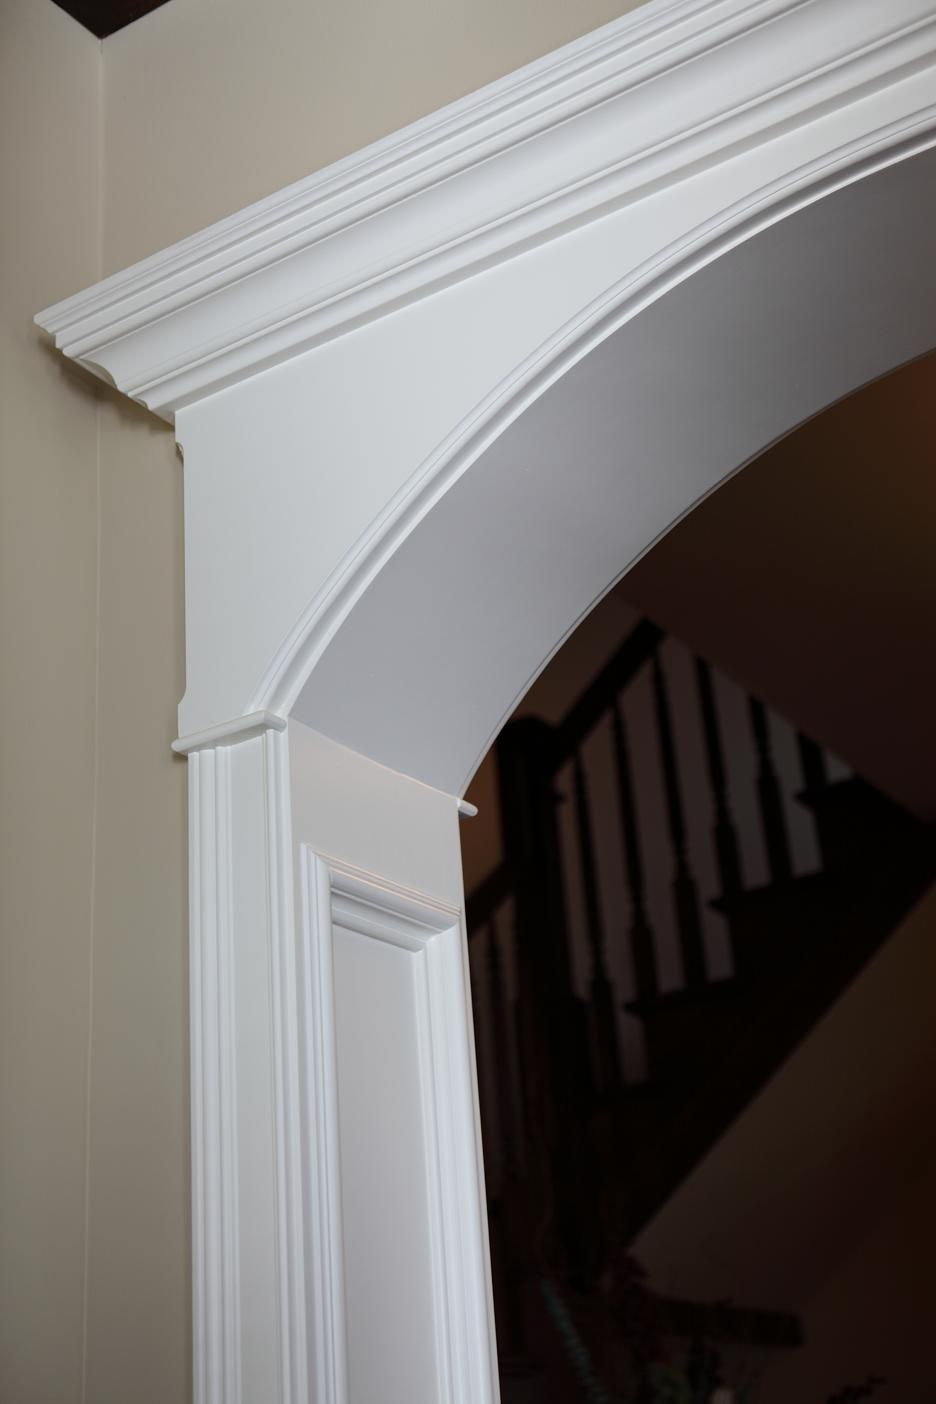 Battaglia homes the very best in interior trim part i for Door moulding